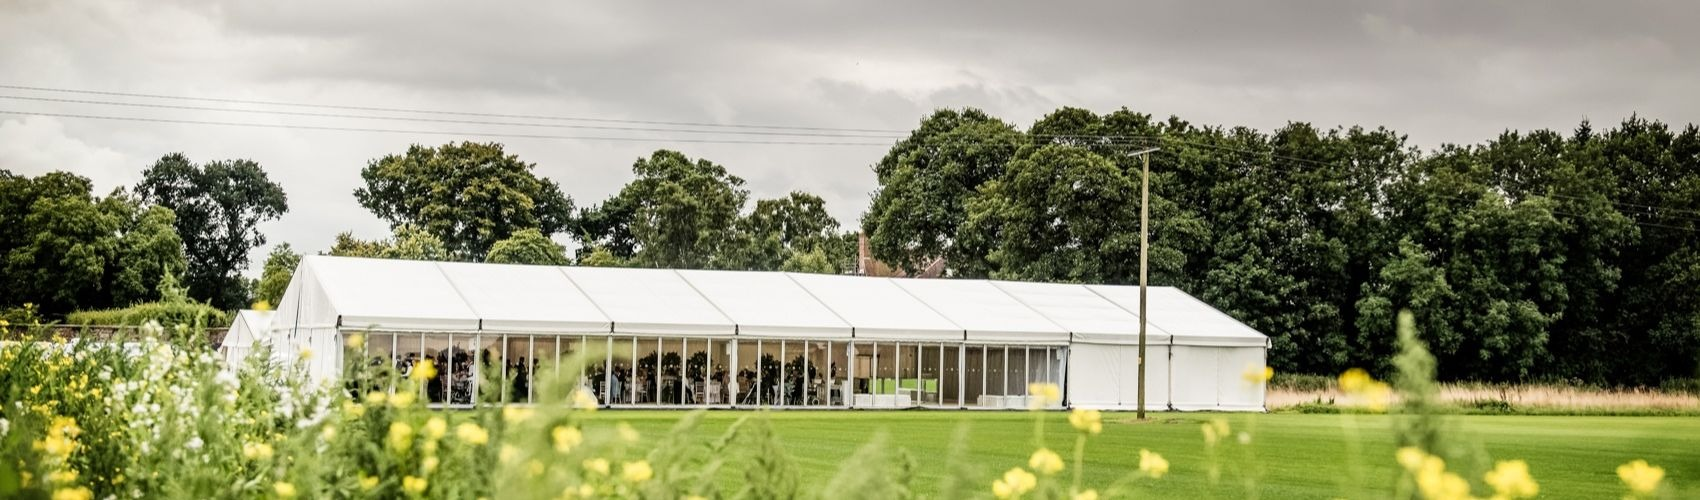 Skipwtih Hall marquee weddings outdoor venue Selby York